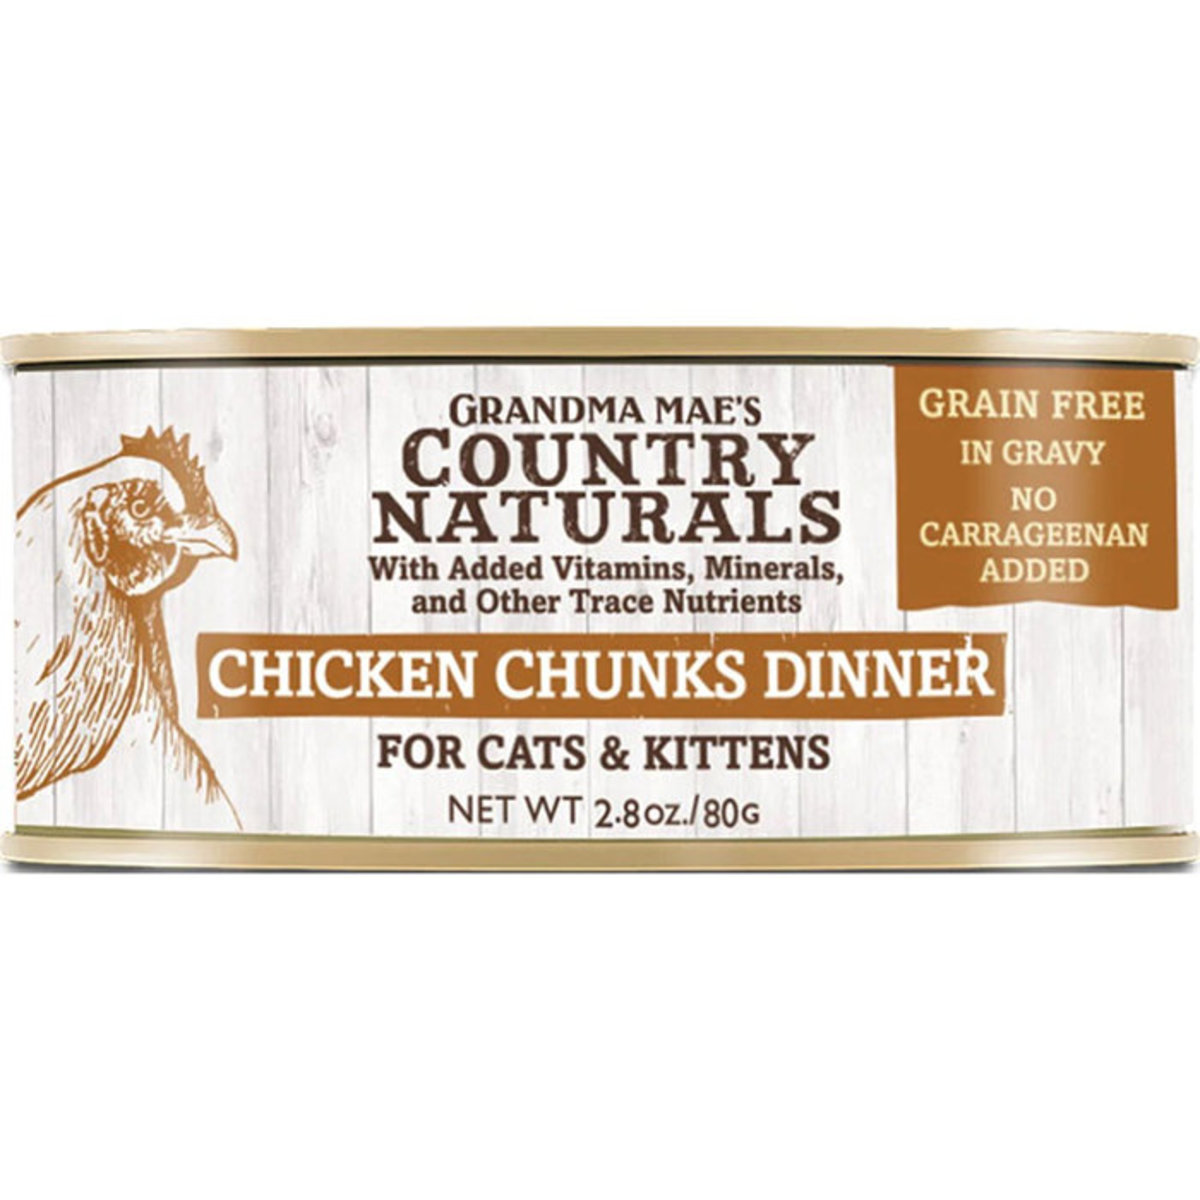 Cat Canned Grain Free Chicken Chunks Dinner for Cats & Kittens 80g